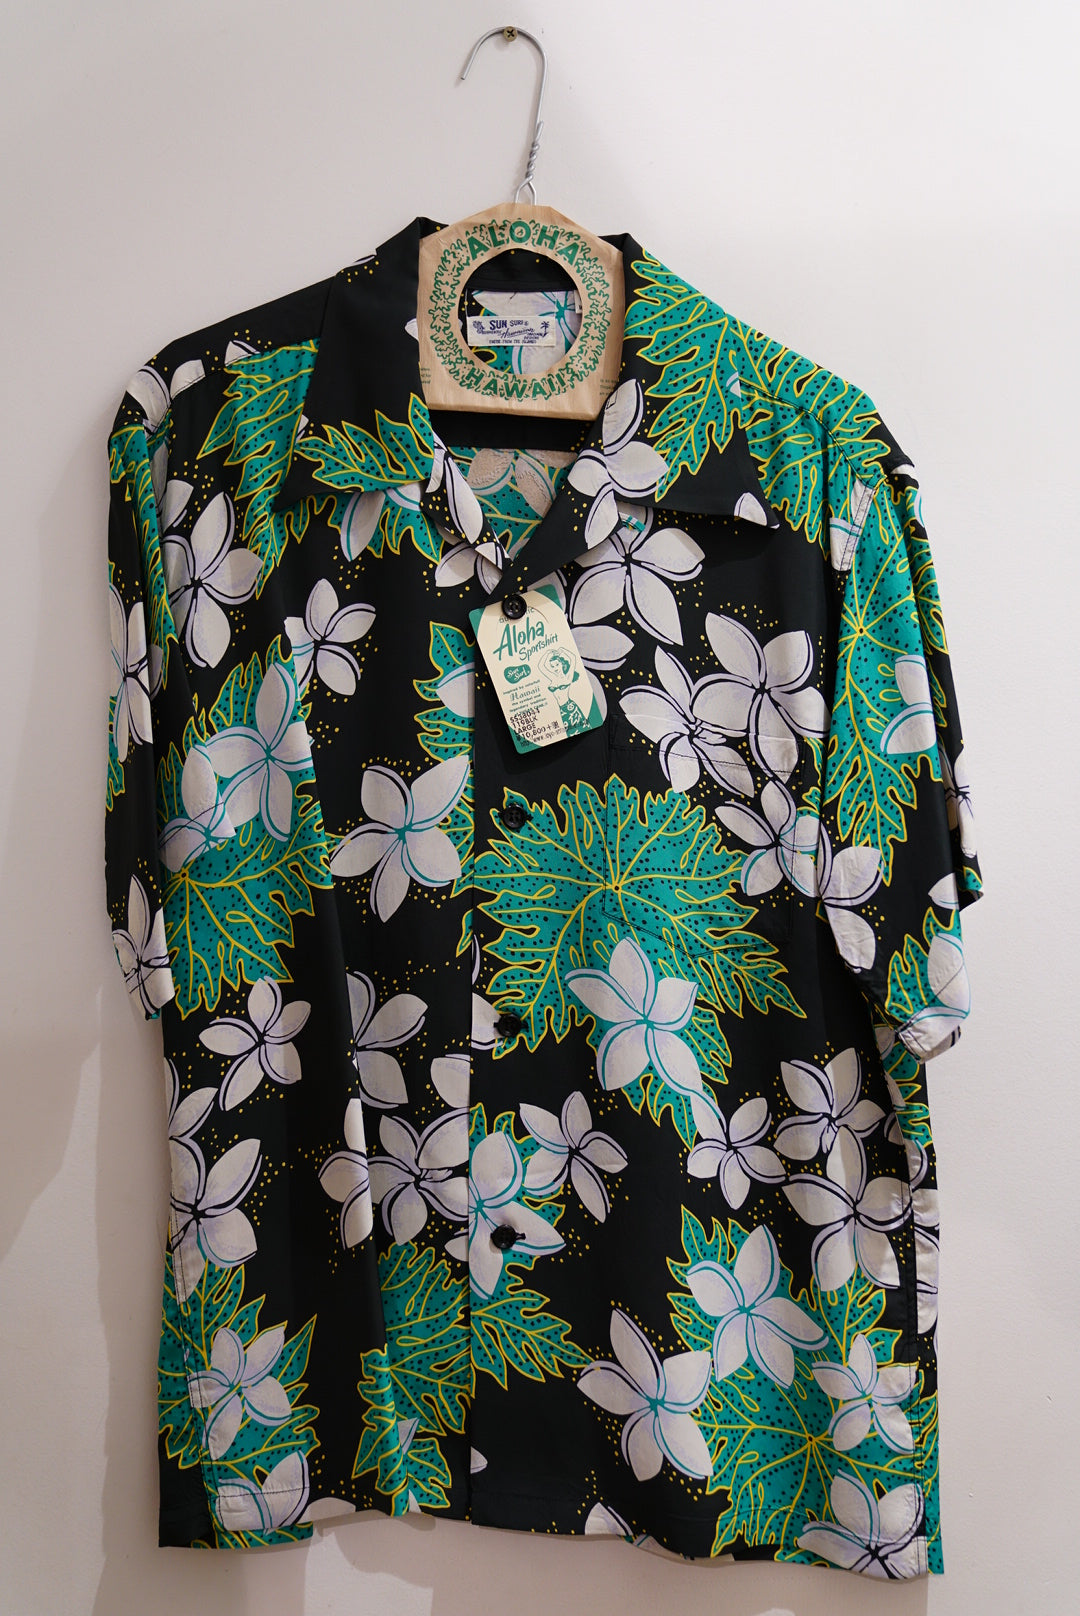 Sunsurf hawaiian shirt